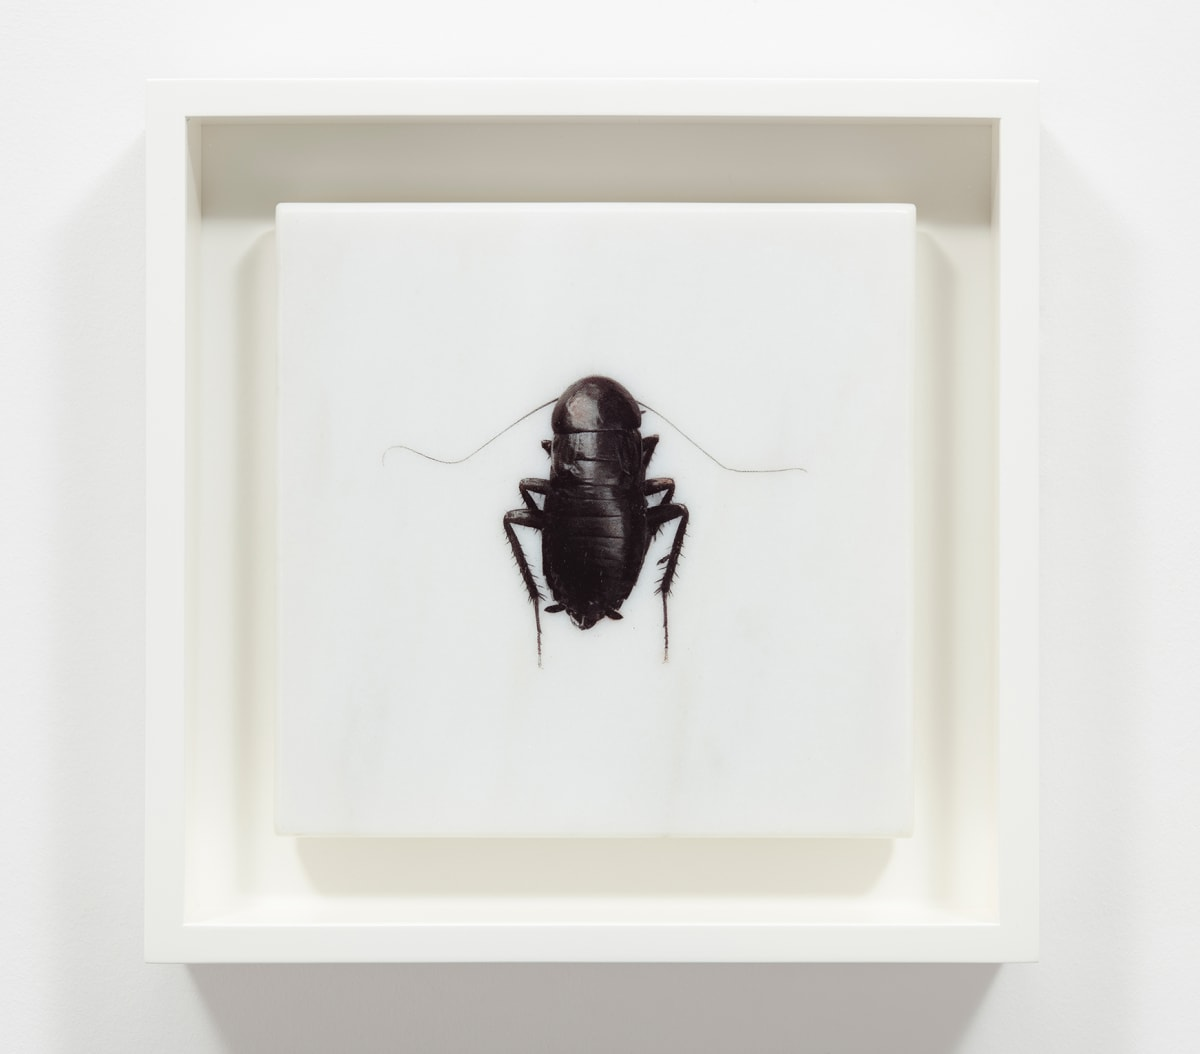 Helen CHADWICK Et in Arcadia, 1995 Photo etching printed on marble, presented in a clam shell box. 20 x 20 x 2 cm Edition 6 of 15